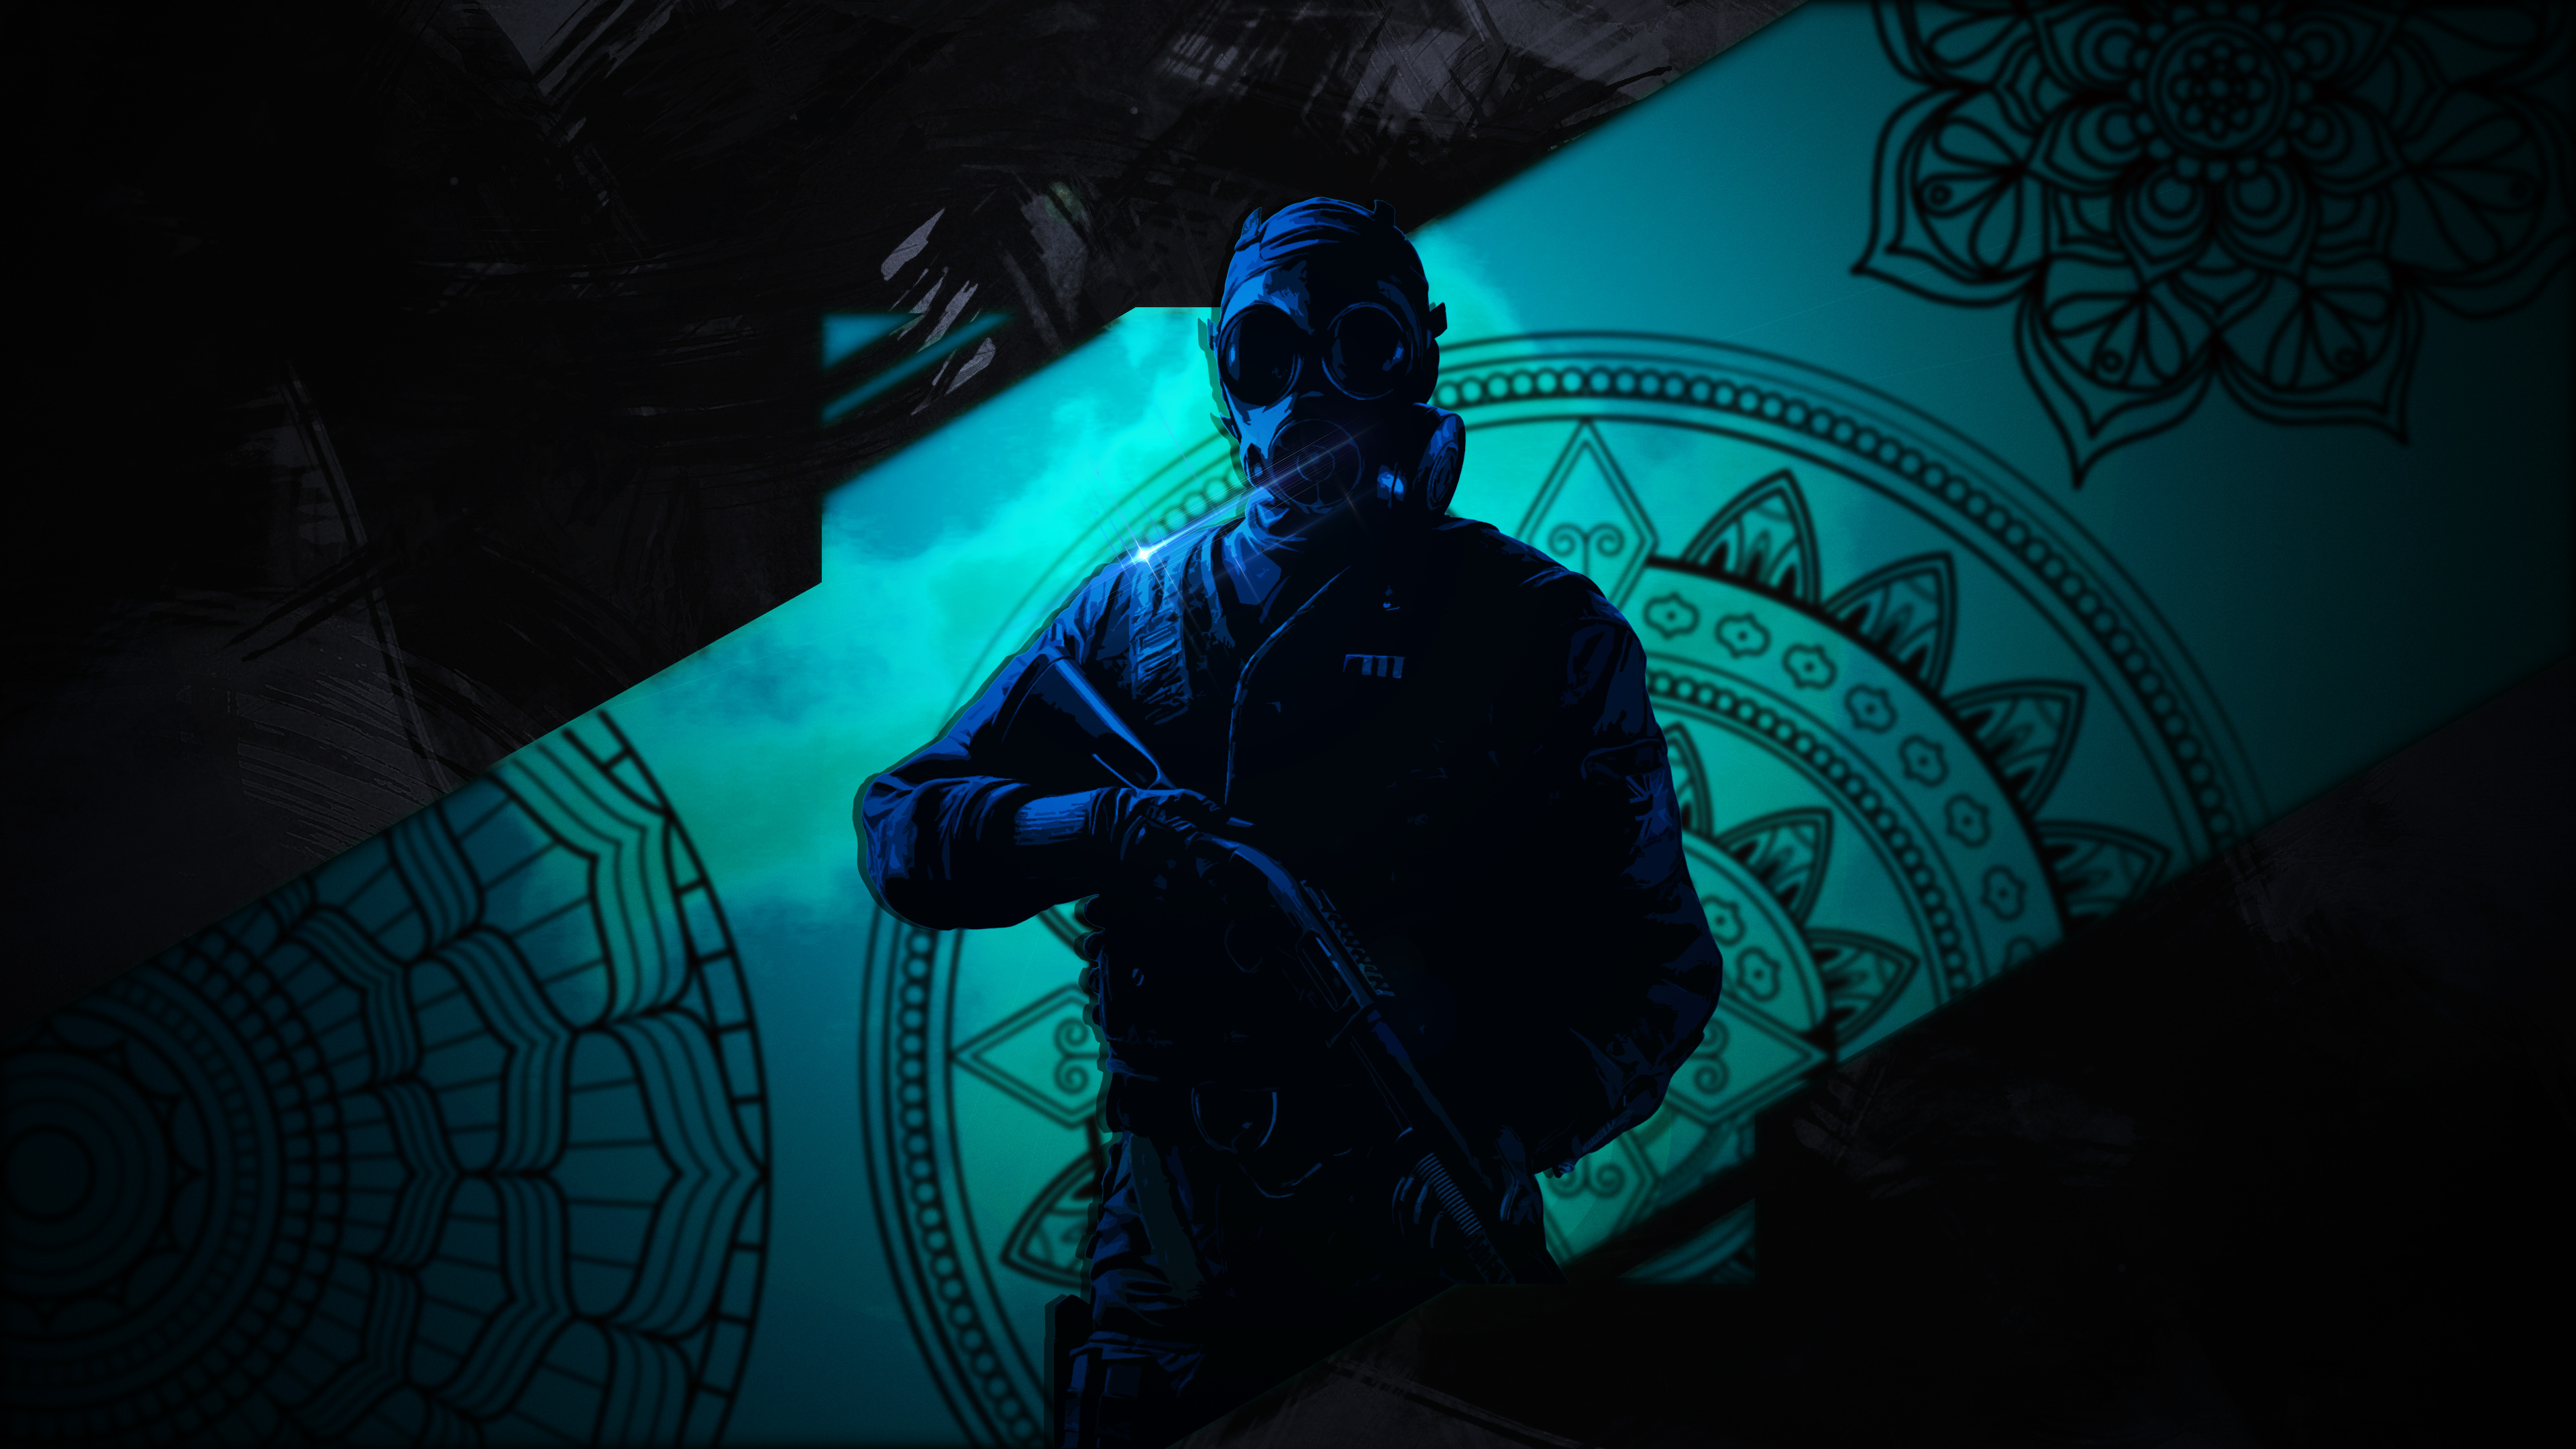 thatcher rainbow six siege 4k 1547319357 - Thatcher Rainbow Six Siege 4k - xbox games wallpapers, tom clancys rainbow six siege wallpapers, ps games wallpapers, hd-wallpapers, games wallpapers, 4k-wallpapers, 2019 games wallpapers